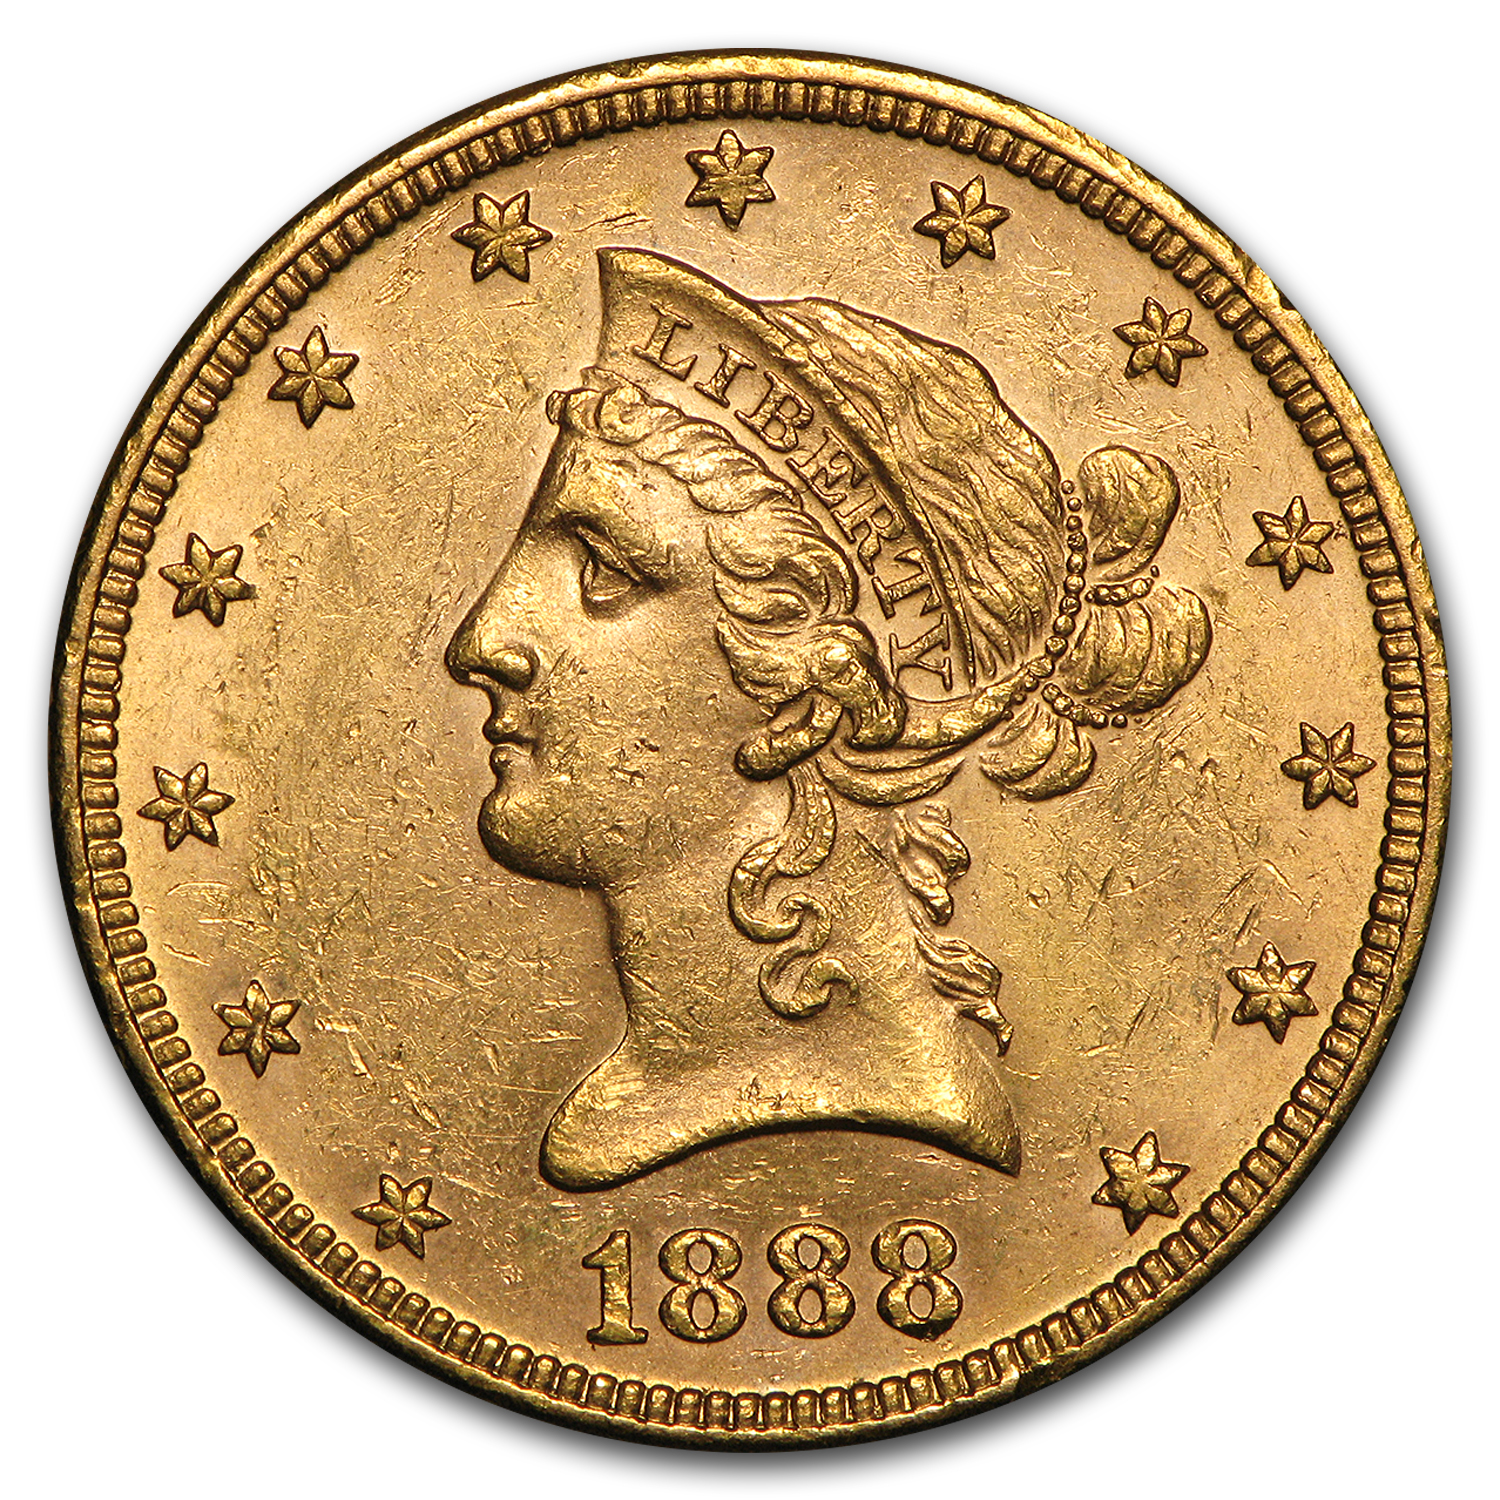 1888 $10 Liberty Gold Eagle BU